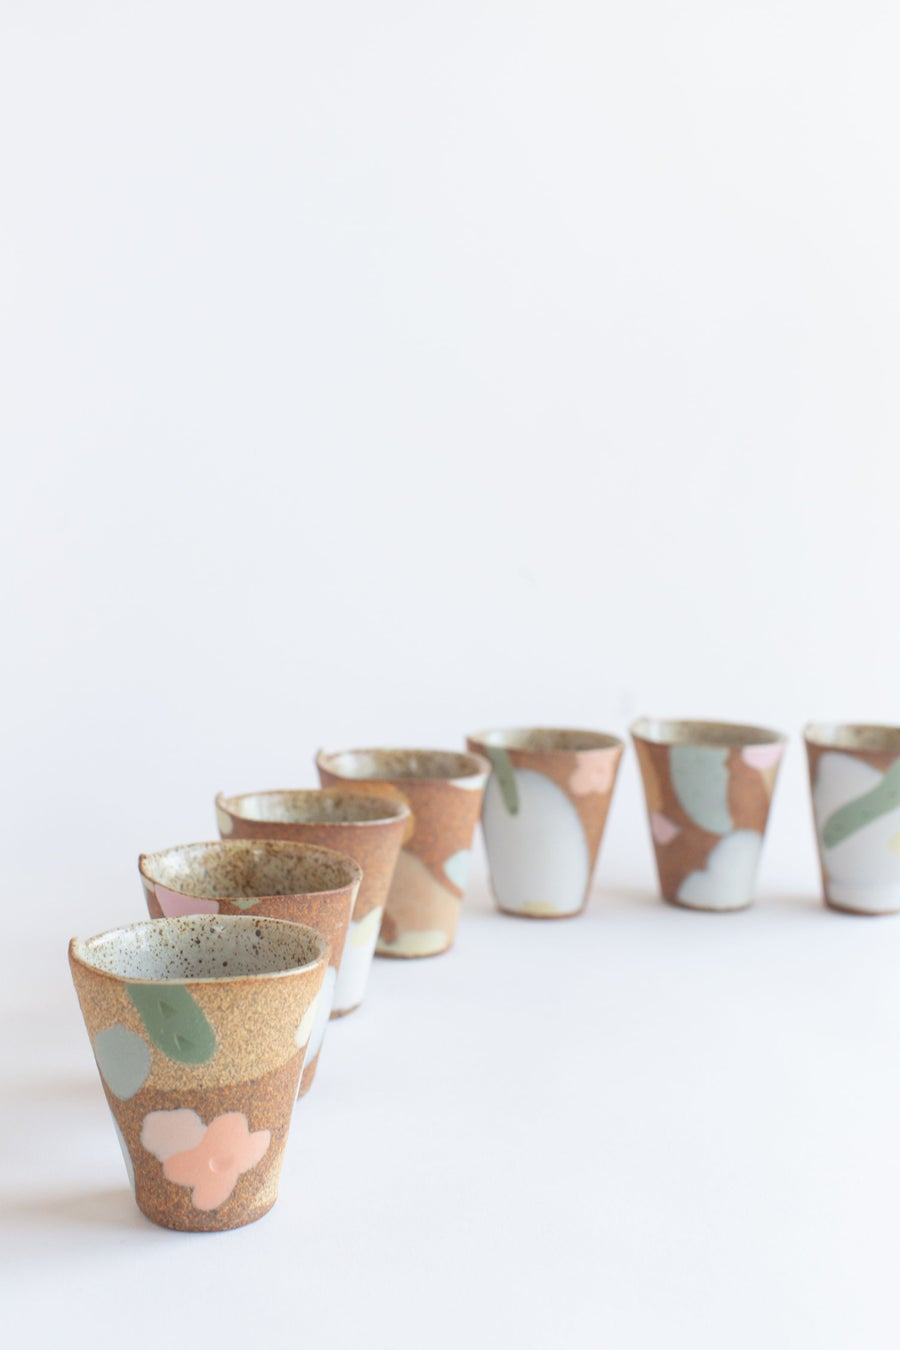 Image of Mini Party Tumbler - Desert Sand, Peach flowers and sage leaves